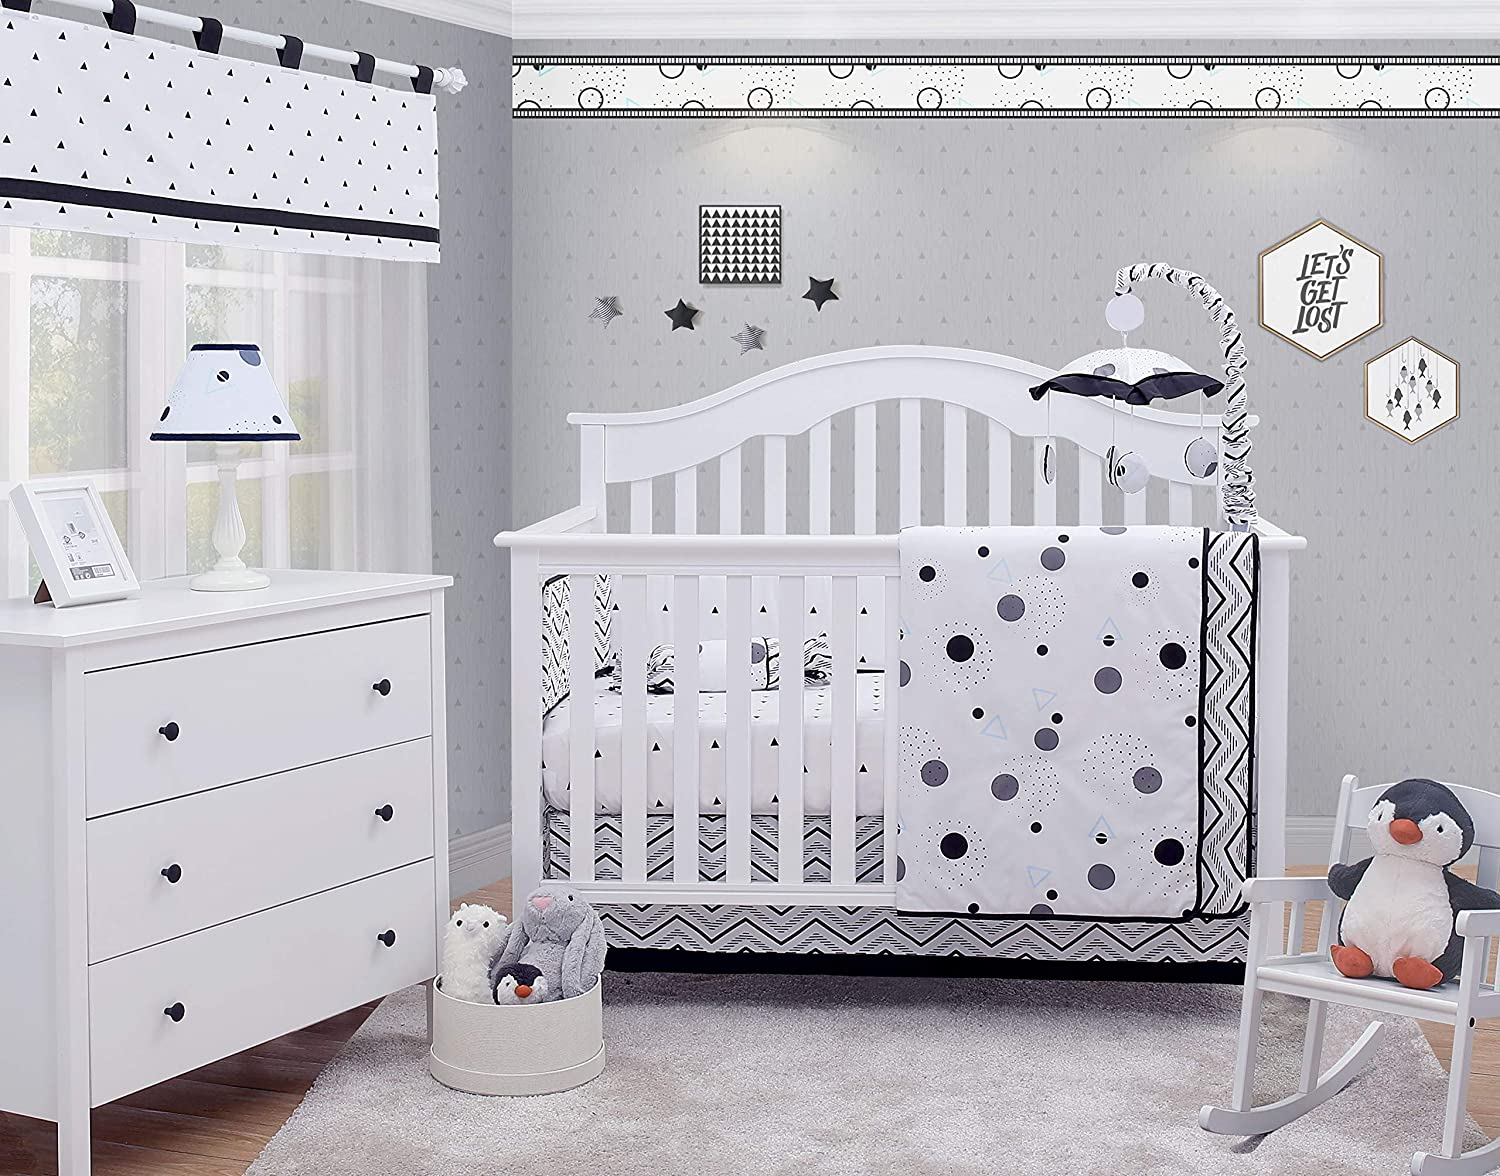 OptimaBaby 6 Piece Baby Nursery Crib Bedding Set, Black White Polka Dot Pattern, Blue/White/Black/Gray